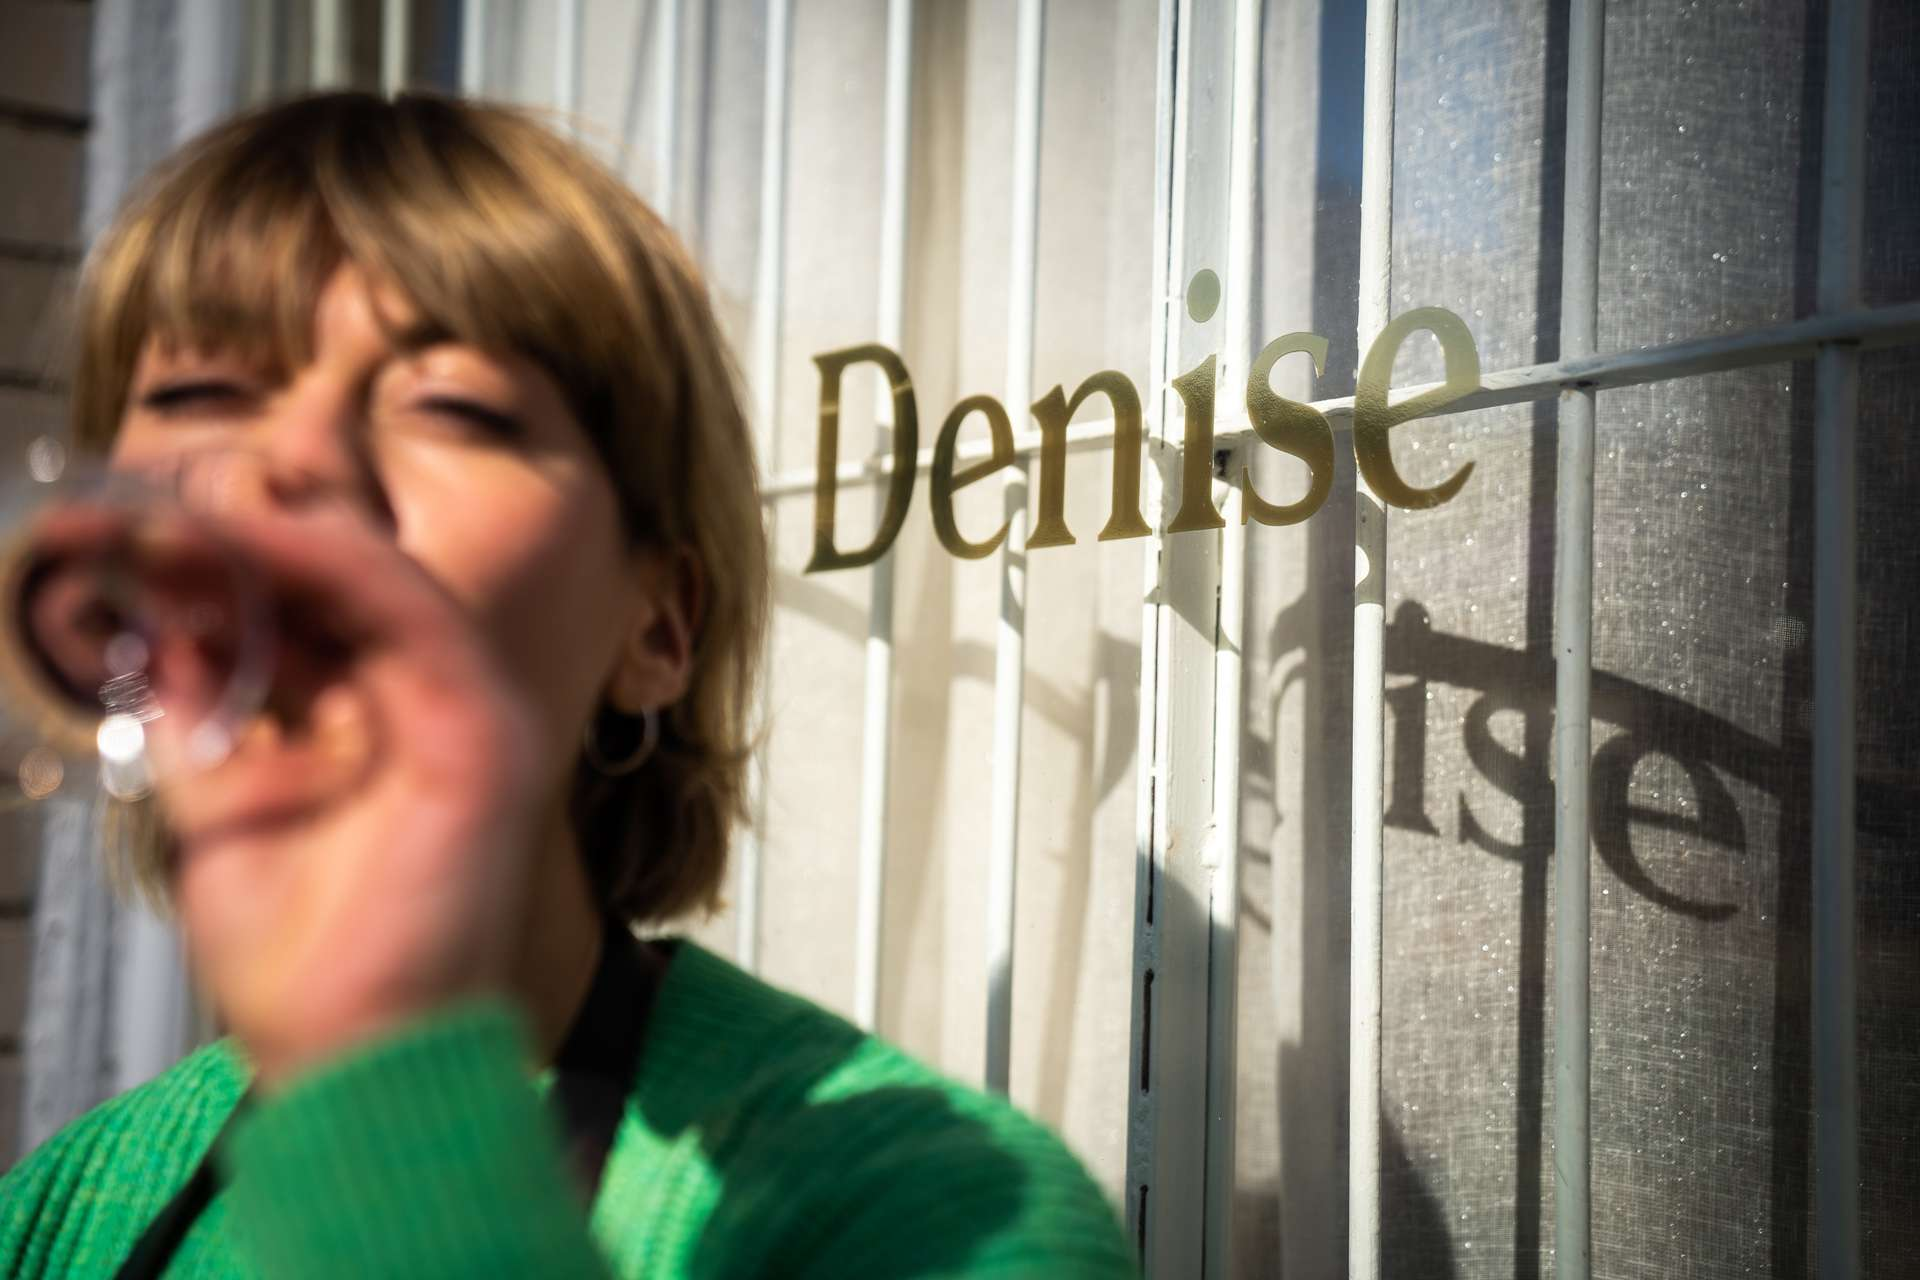 Dahls workwear and aprons photographed by Bruno Florin of woman drinking glass of wine in front of Denise boutique